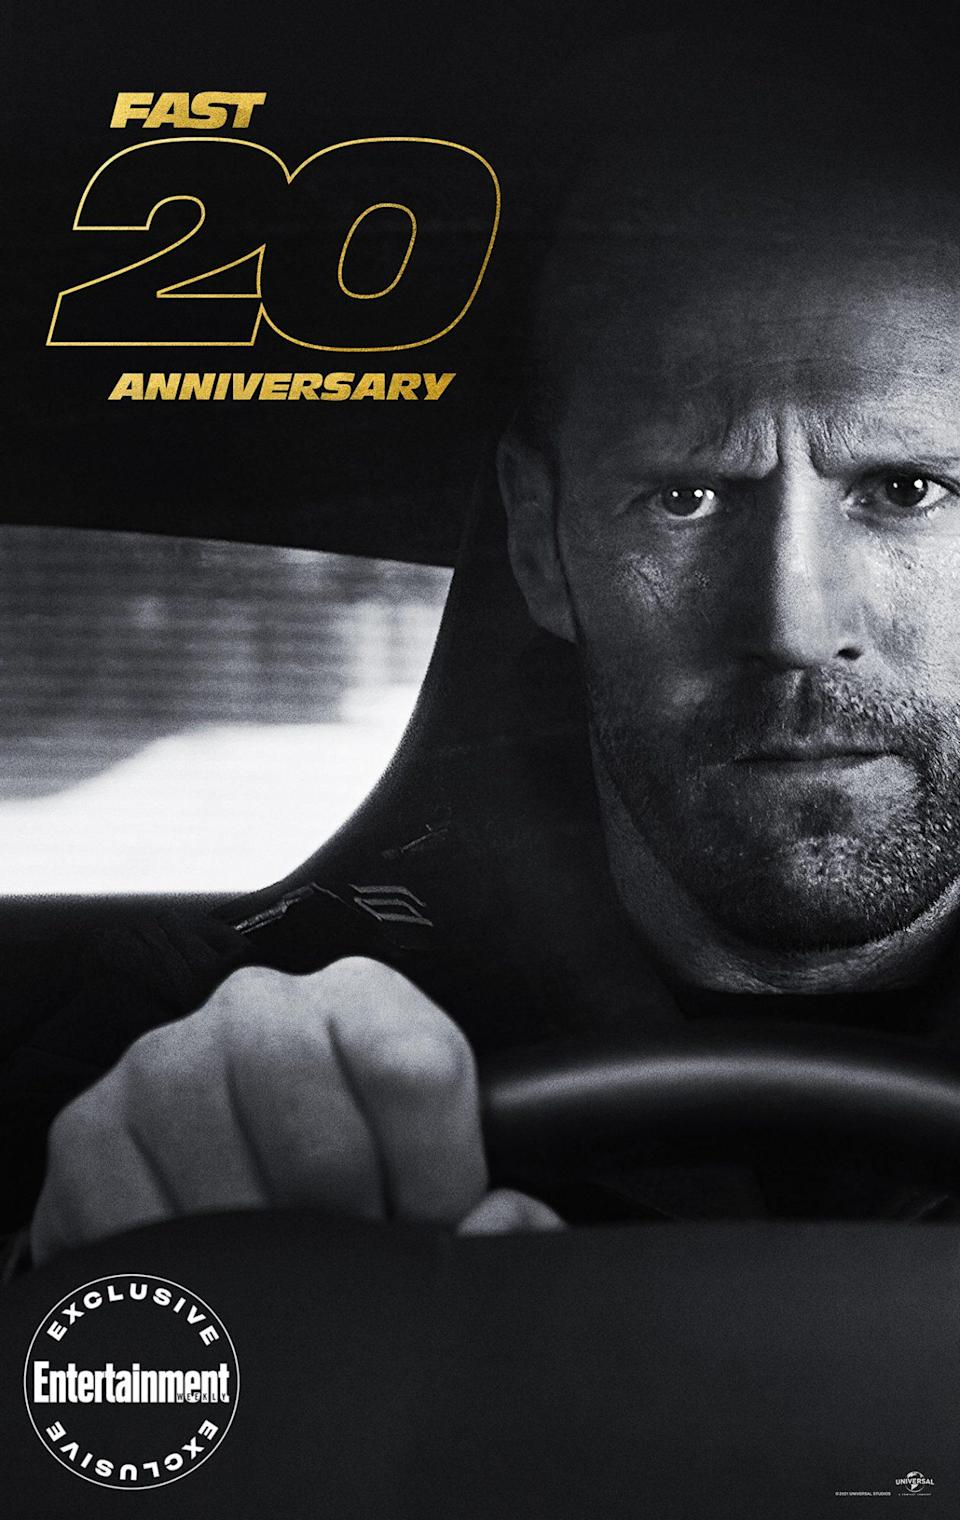 """<p>Jason Statham arrived with a bang, popping up in the <em>Fast & Furious 6</em> mid-credits scene, in which he was revealed as Han's killer. He returned as <em>Furious 7</em>'s main antagonist, Deckard Shaw, who eventually became part of the crew in <em>The Fate of the Furious</em> and the co-hero of <em>Hobbs & Shaw</em>. But with calls for """"justice for Han"""" and Kang now returning, what does Statham have to say for himself? """"They better bring me back because I need to put out that fire,"""" <a href=""""https://ew.com/movies/jason-statham-reacts-f9-han-revival/"""" rel=""""nofollow noopener"""" target=""""_blank"""" data-ylk=""""slk:Statham recently told EW"""" class=""""link rapid-noclick-resp"""">Statham recently told EW</a>. """"If he's got any score to settle, it's with me.""""</p>"""